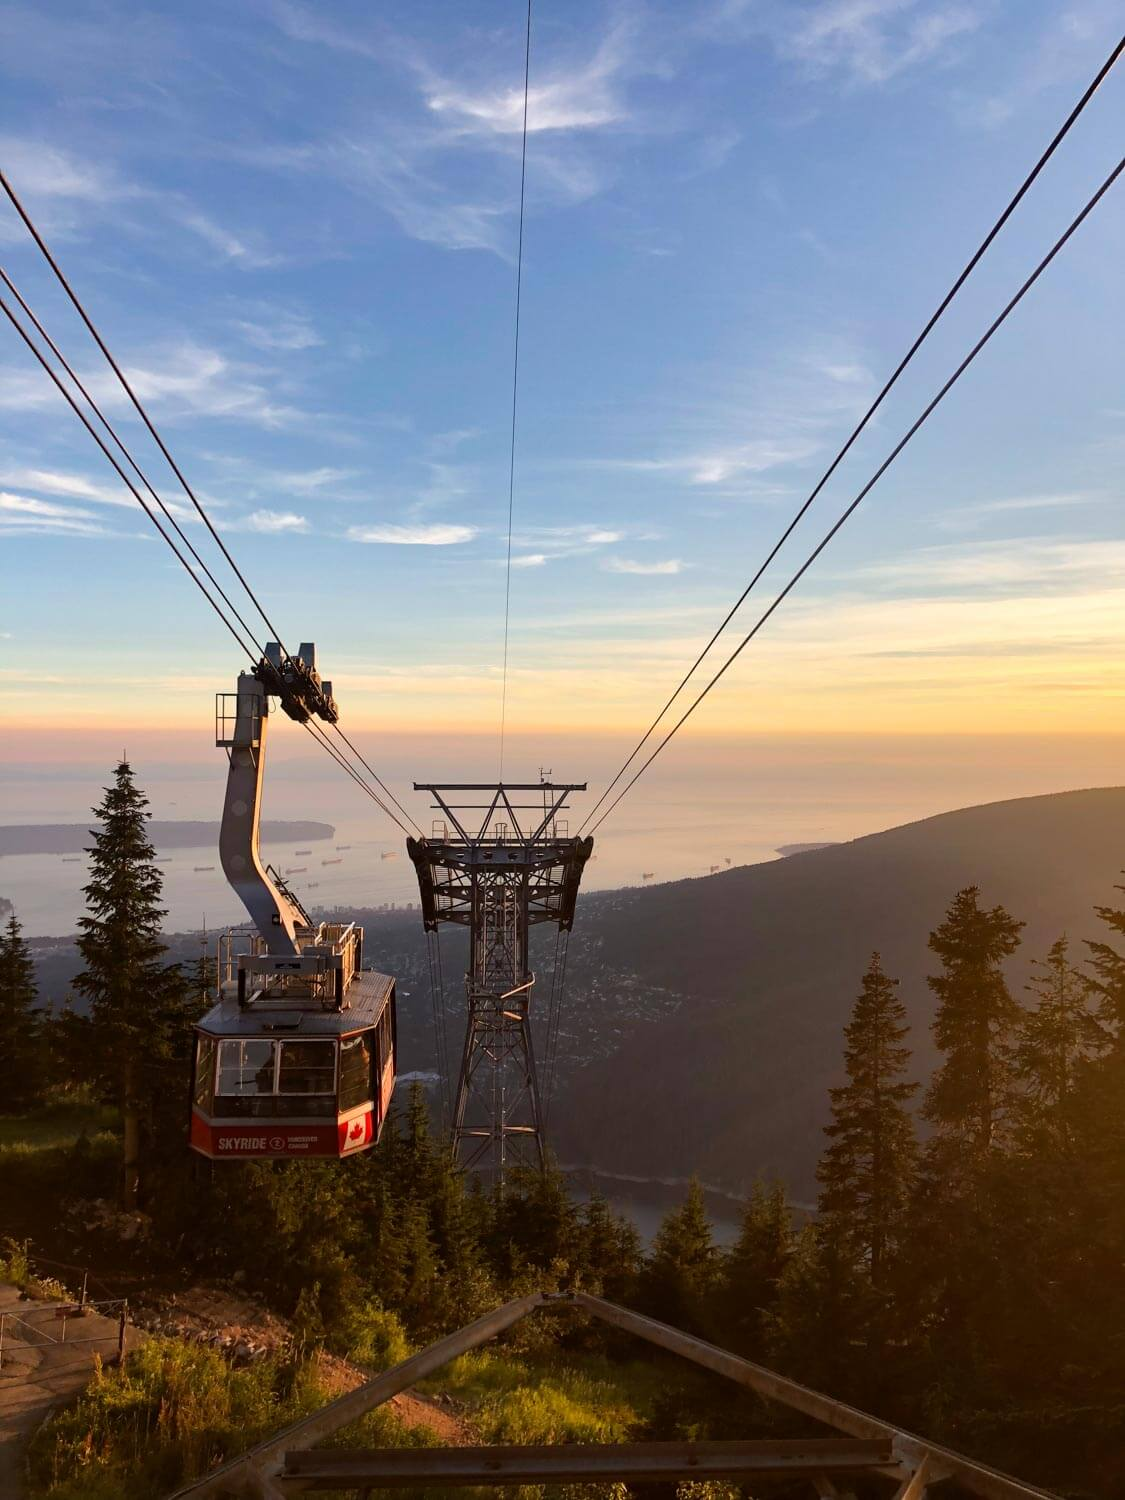 Grouse mountain gondola at sunset